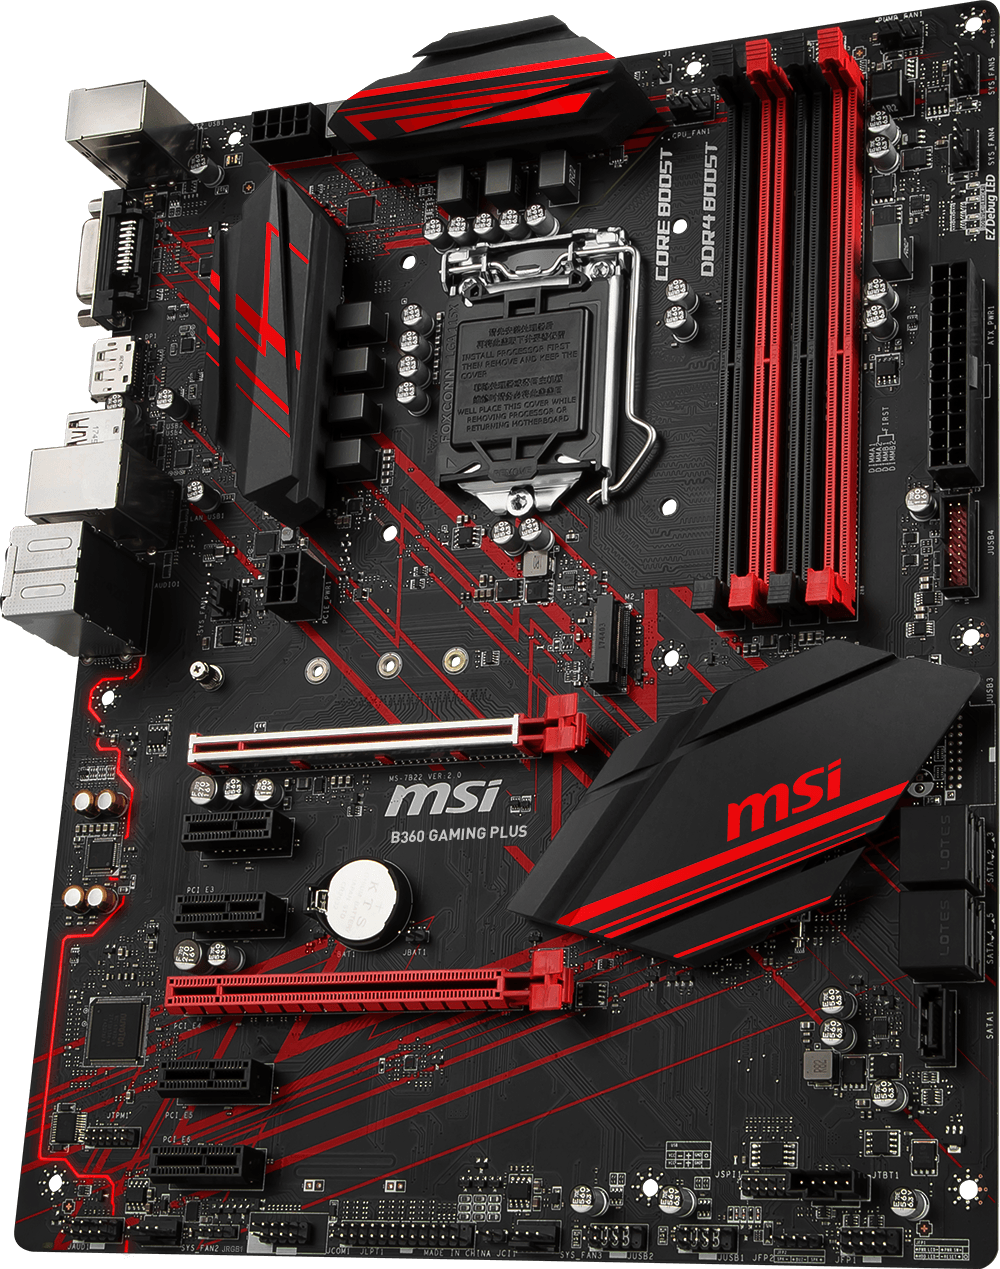 MSI B360 GAMING PLUS 3D